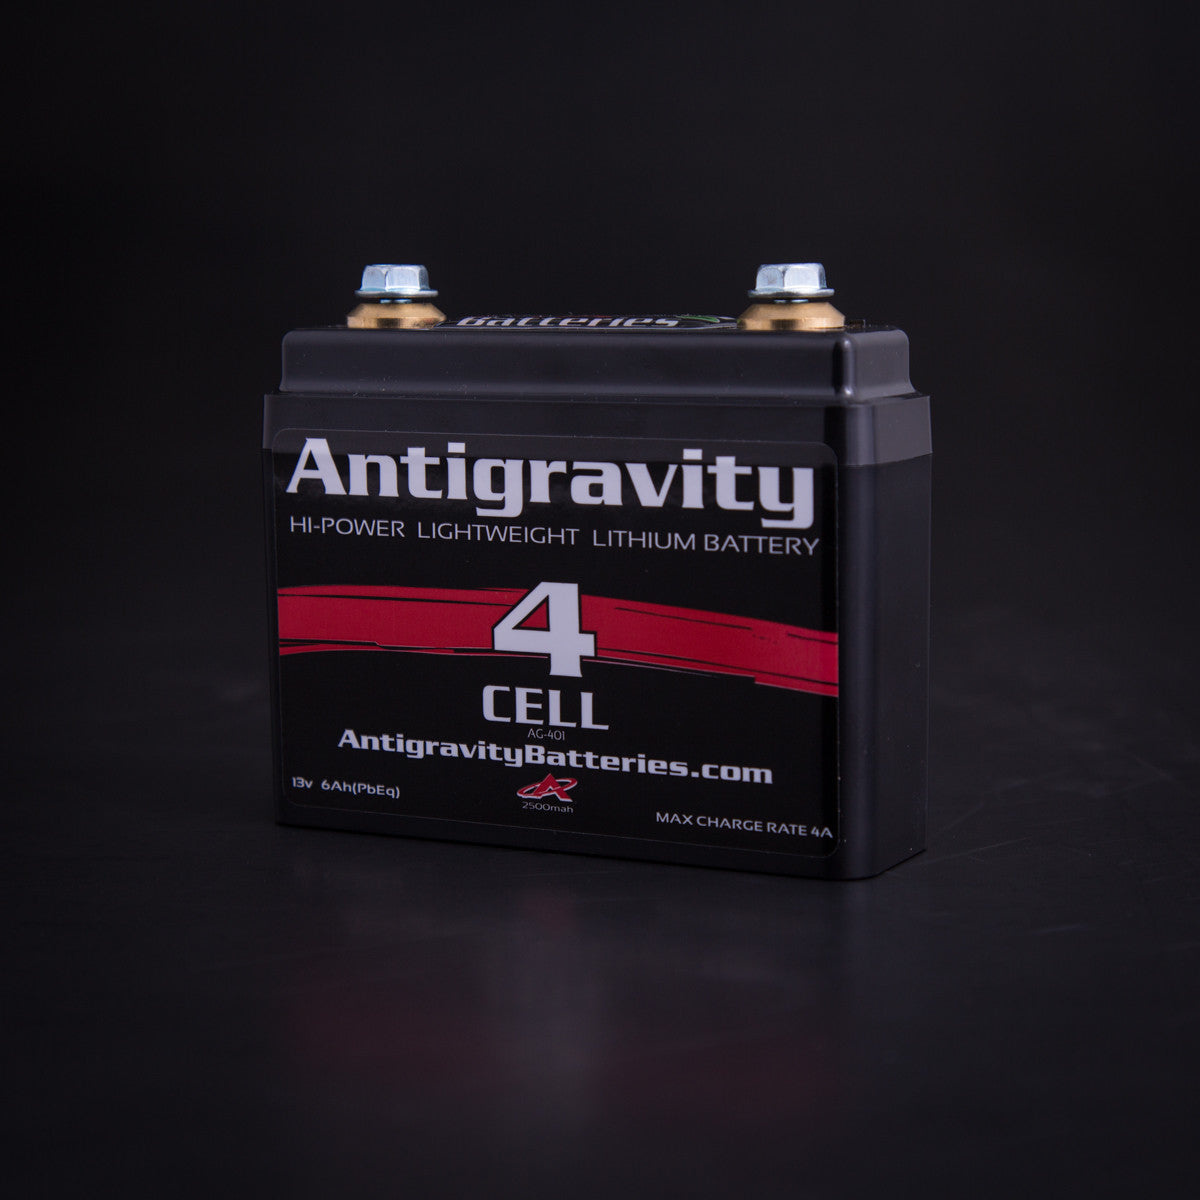 Antigravity 4-cell - Revival Cycles